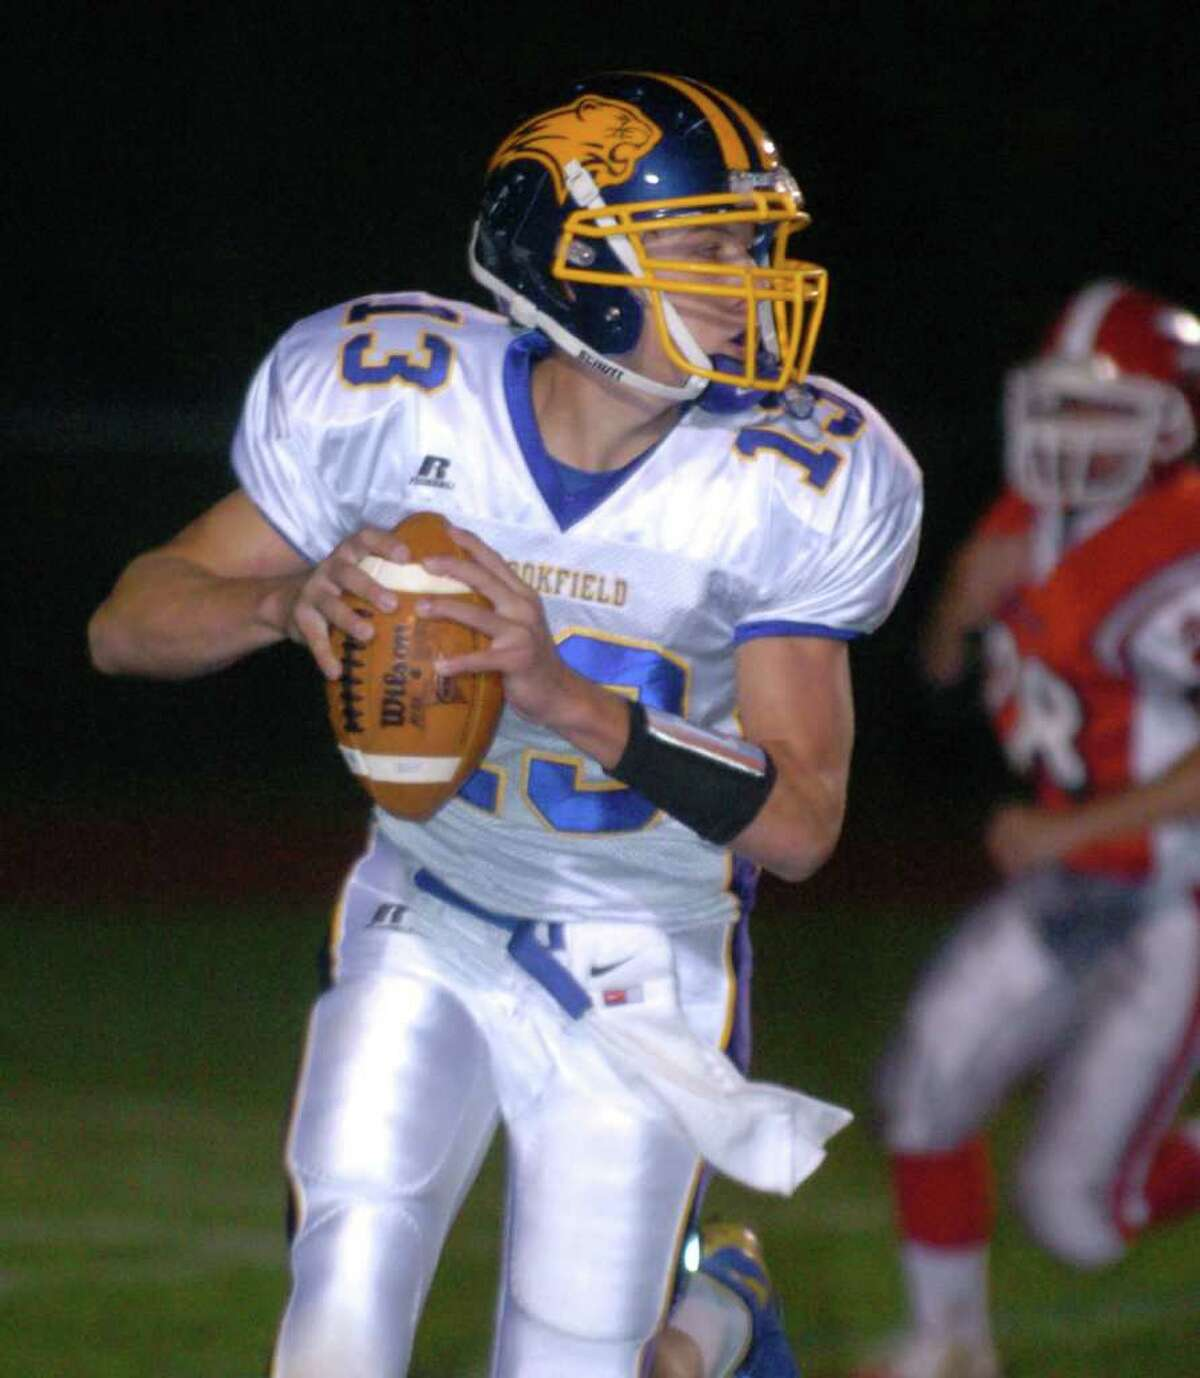 Brookfield's 13, Boeing Brown, sets up for a pass during the football game against Masuk at Masuk Oct. 8, 2010.